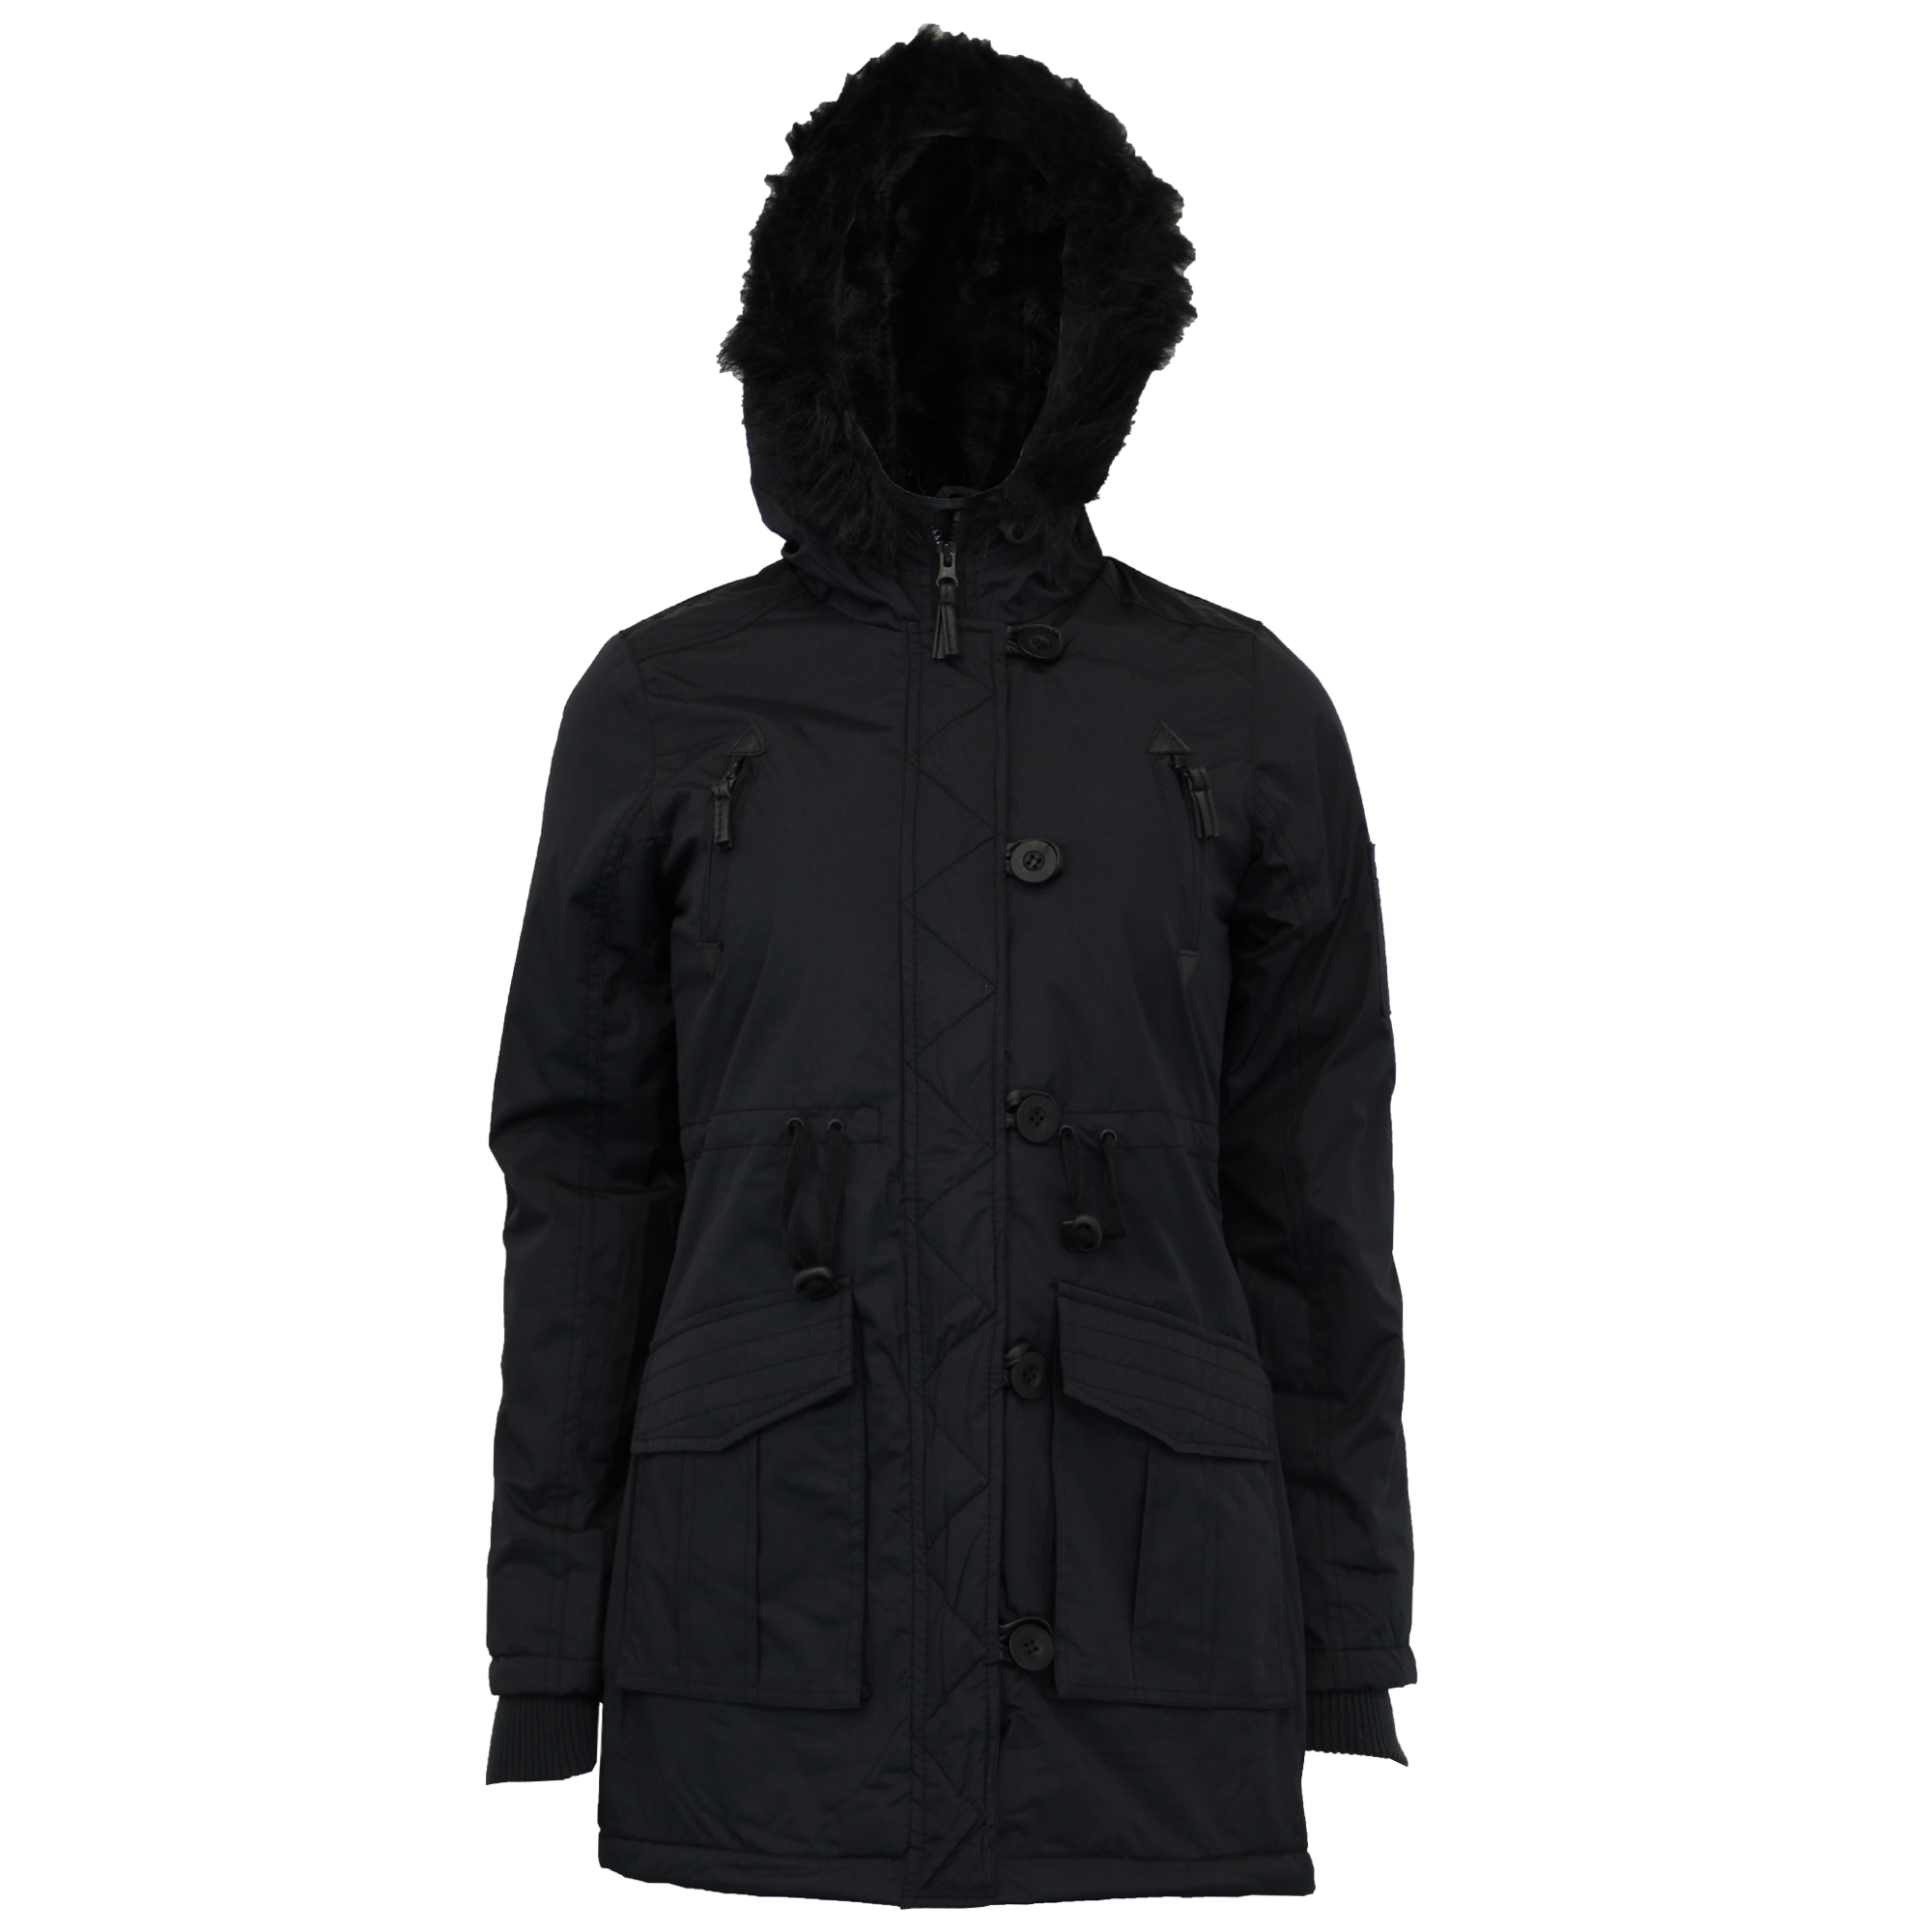 Details about Ladies Parka Jacket Womens Brave Soul Coat Padded Hooded Fur Military Winter New